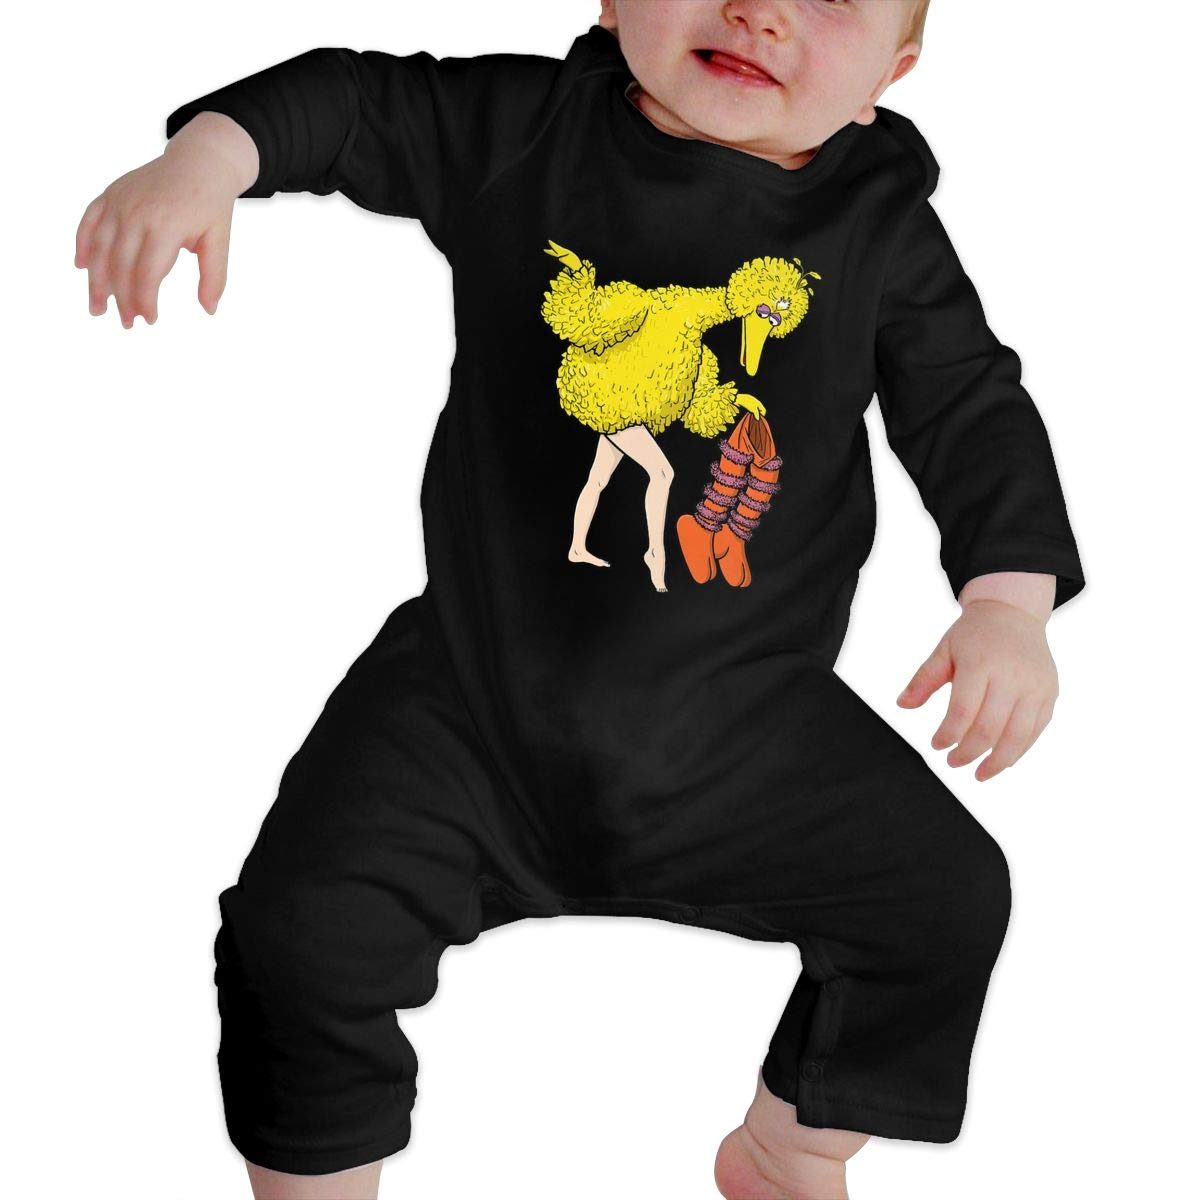 SININIDR Newborn Jumpsuit Infant Baby Girls G is for Games Long-Sleeve Bodysuit Playsuit Outfits Clothes Black